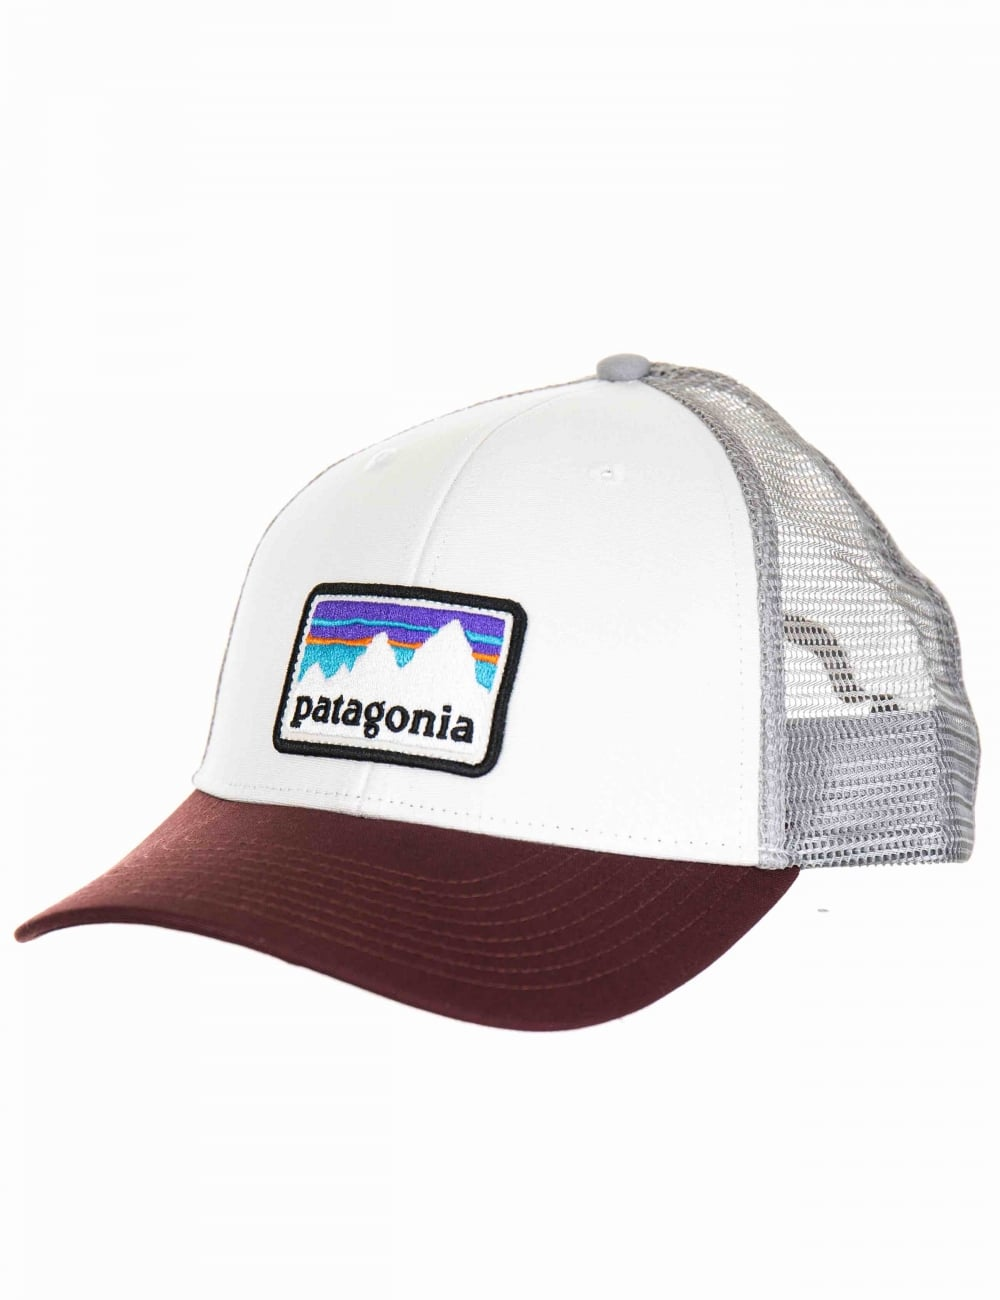 0fdcb3ee6a5 Patagonia Shop Sticker Patch LoPro Trucker Hat - White - Accessories ...